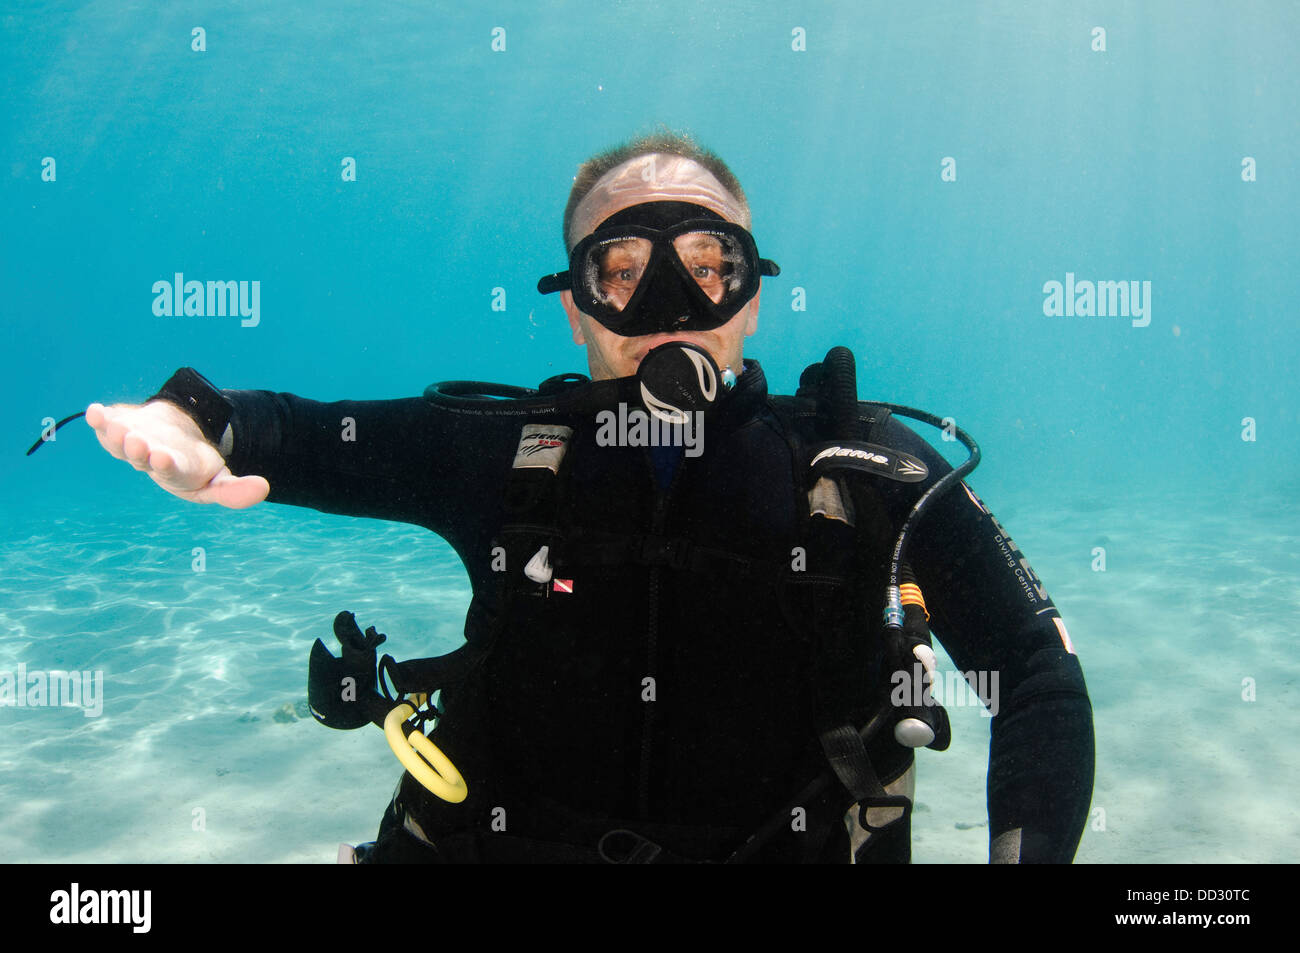 Underwater Hand signs - Stock Image